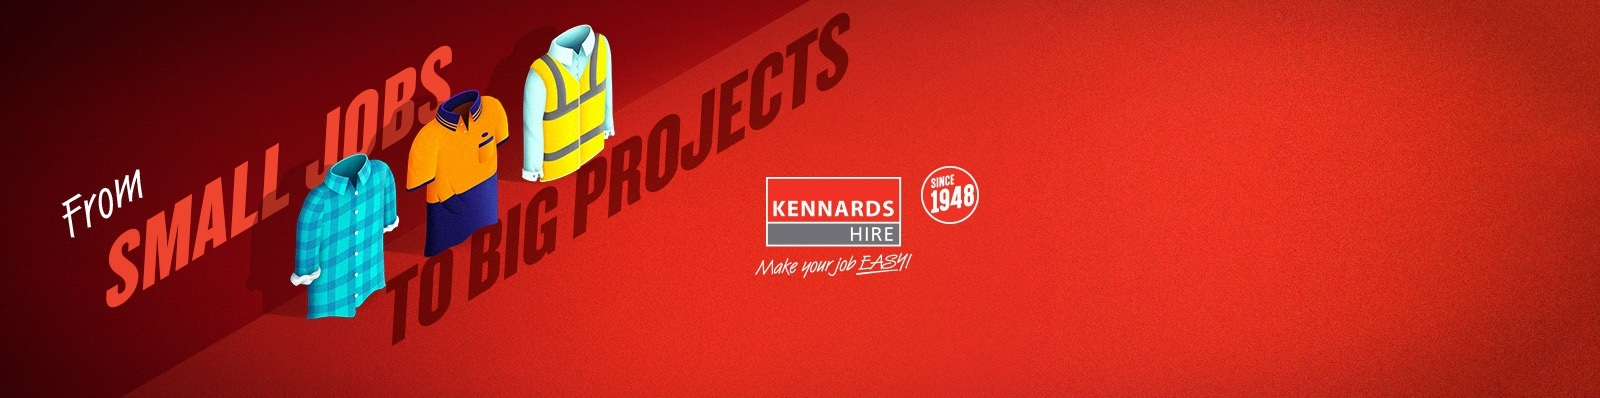 Kennards Hire Small jobs to Big